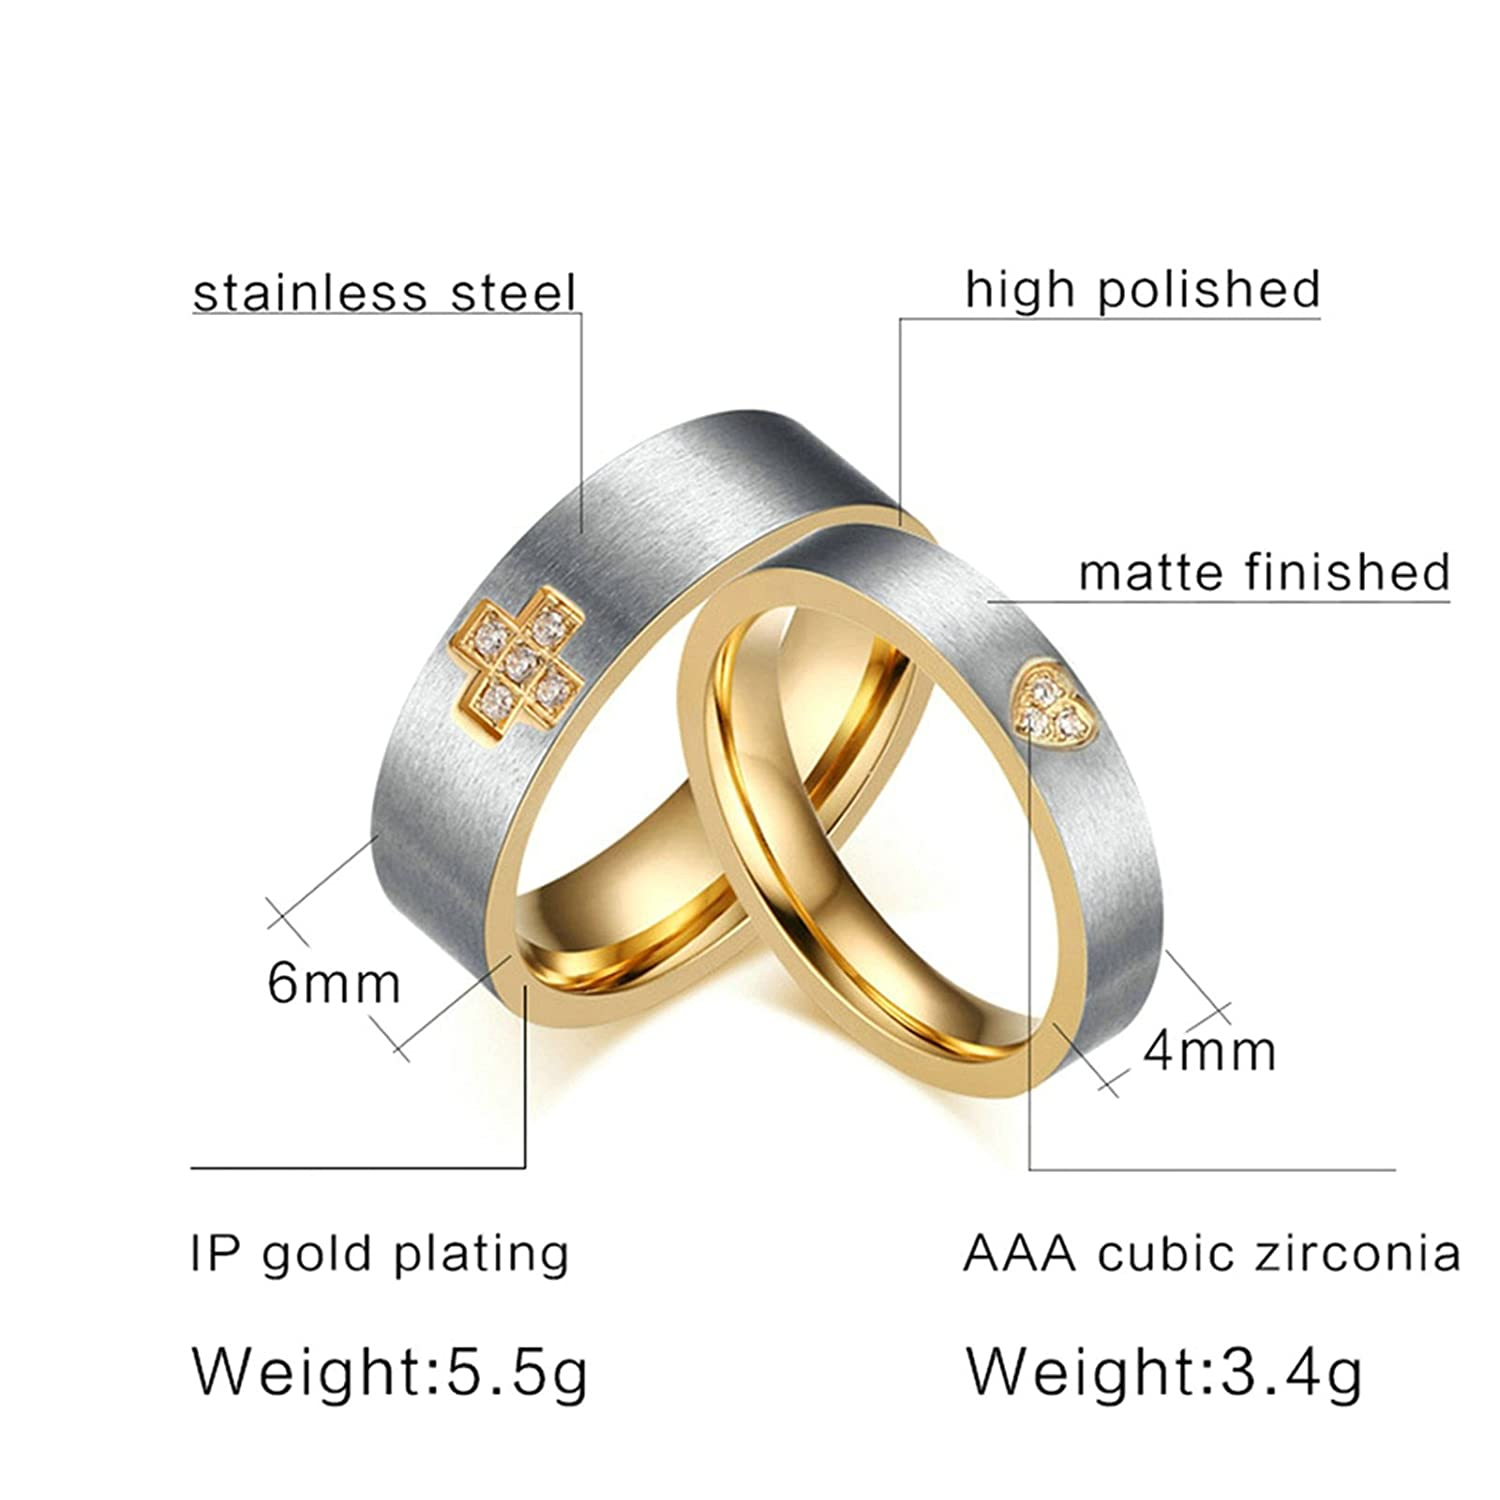 Amazon.com: Daesar Wedding Rings Stainless Steel Silver & Gold Cross Heart Cz Rings 4/6 Mm Women Size 5 & Men Size 10: Jewelry